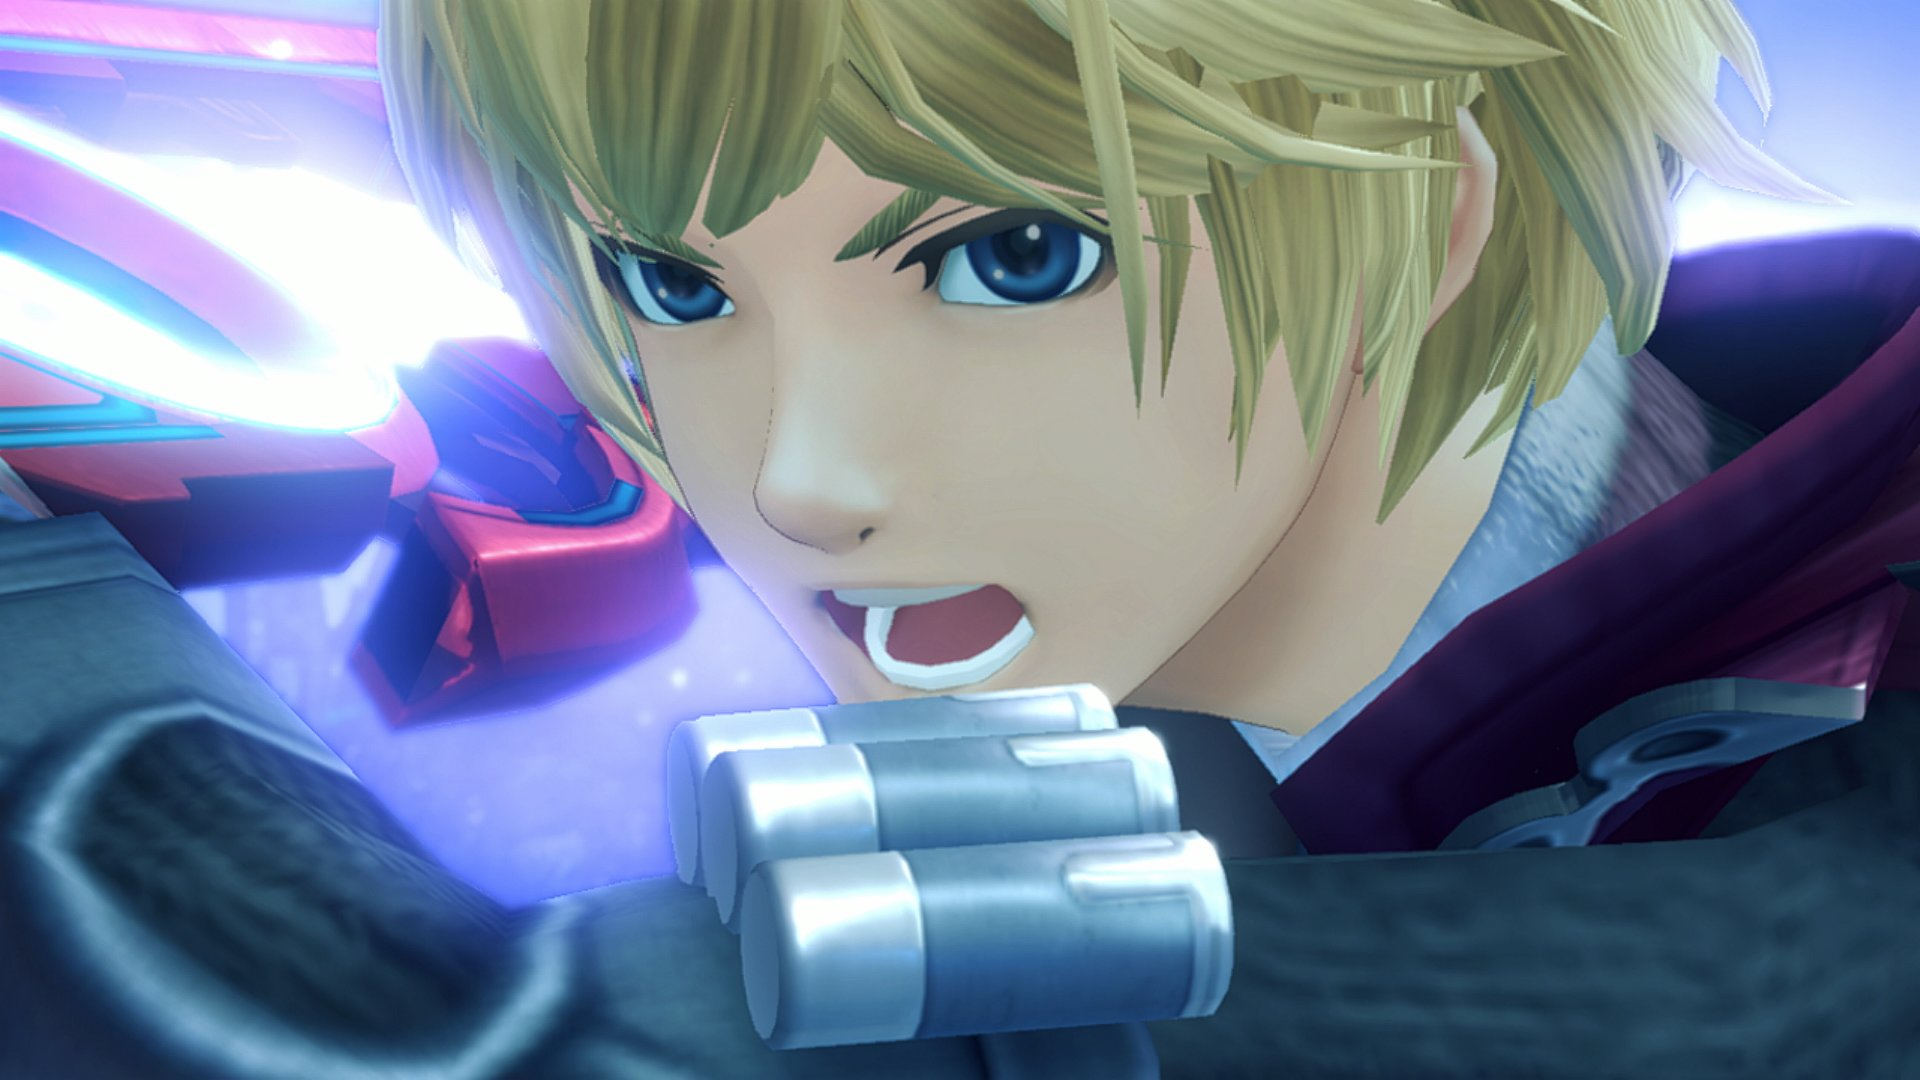 Xenoblade Chronicles Definitive Edition - Shulk